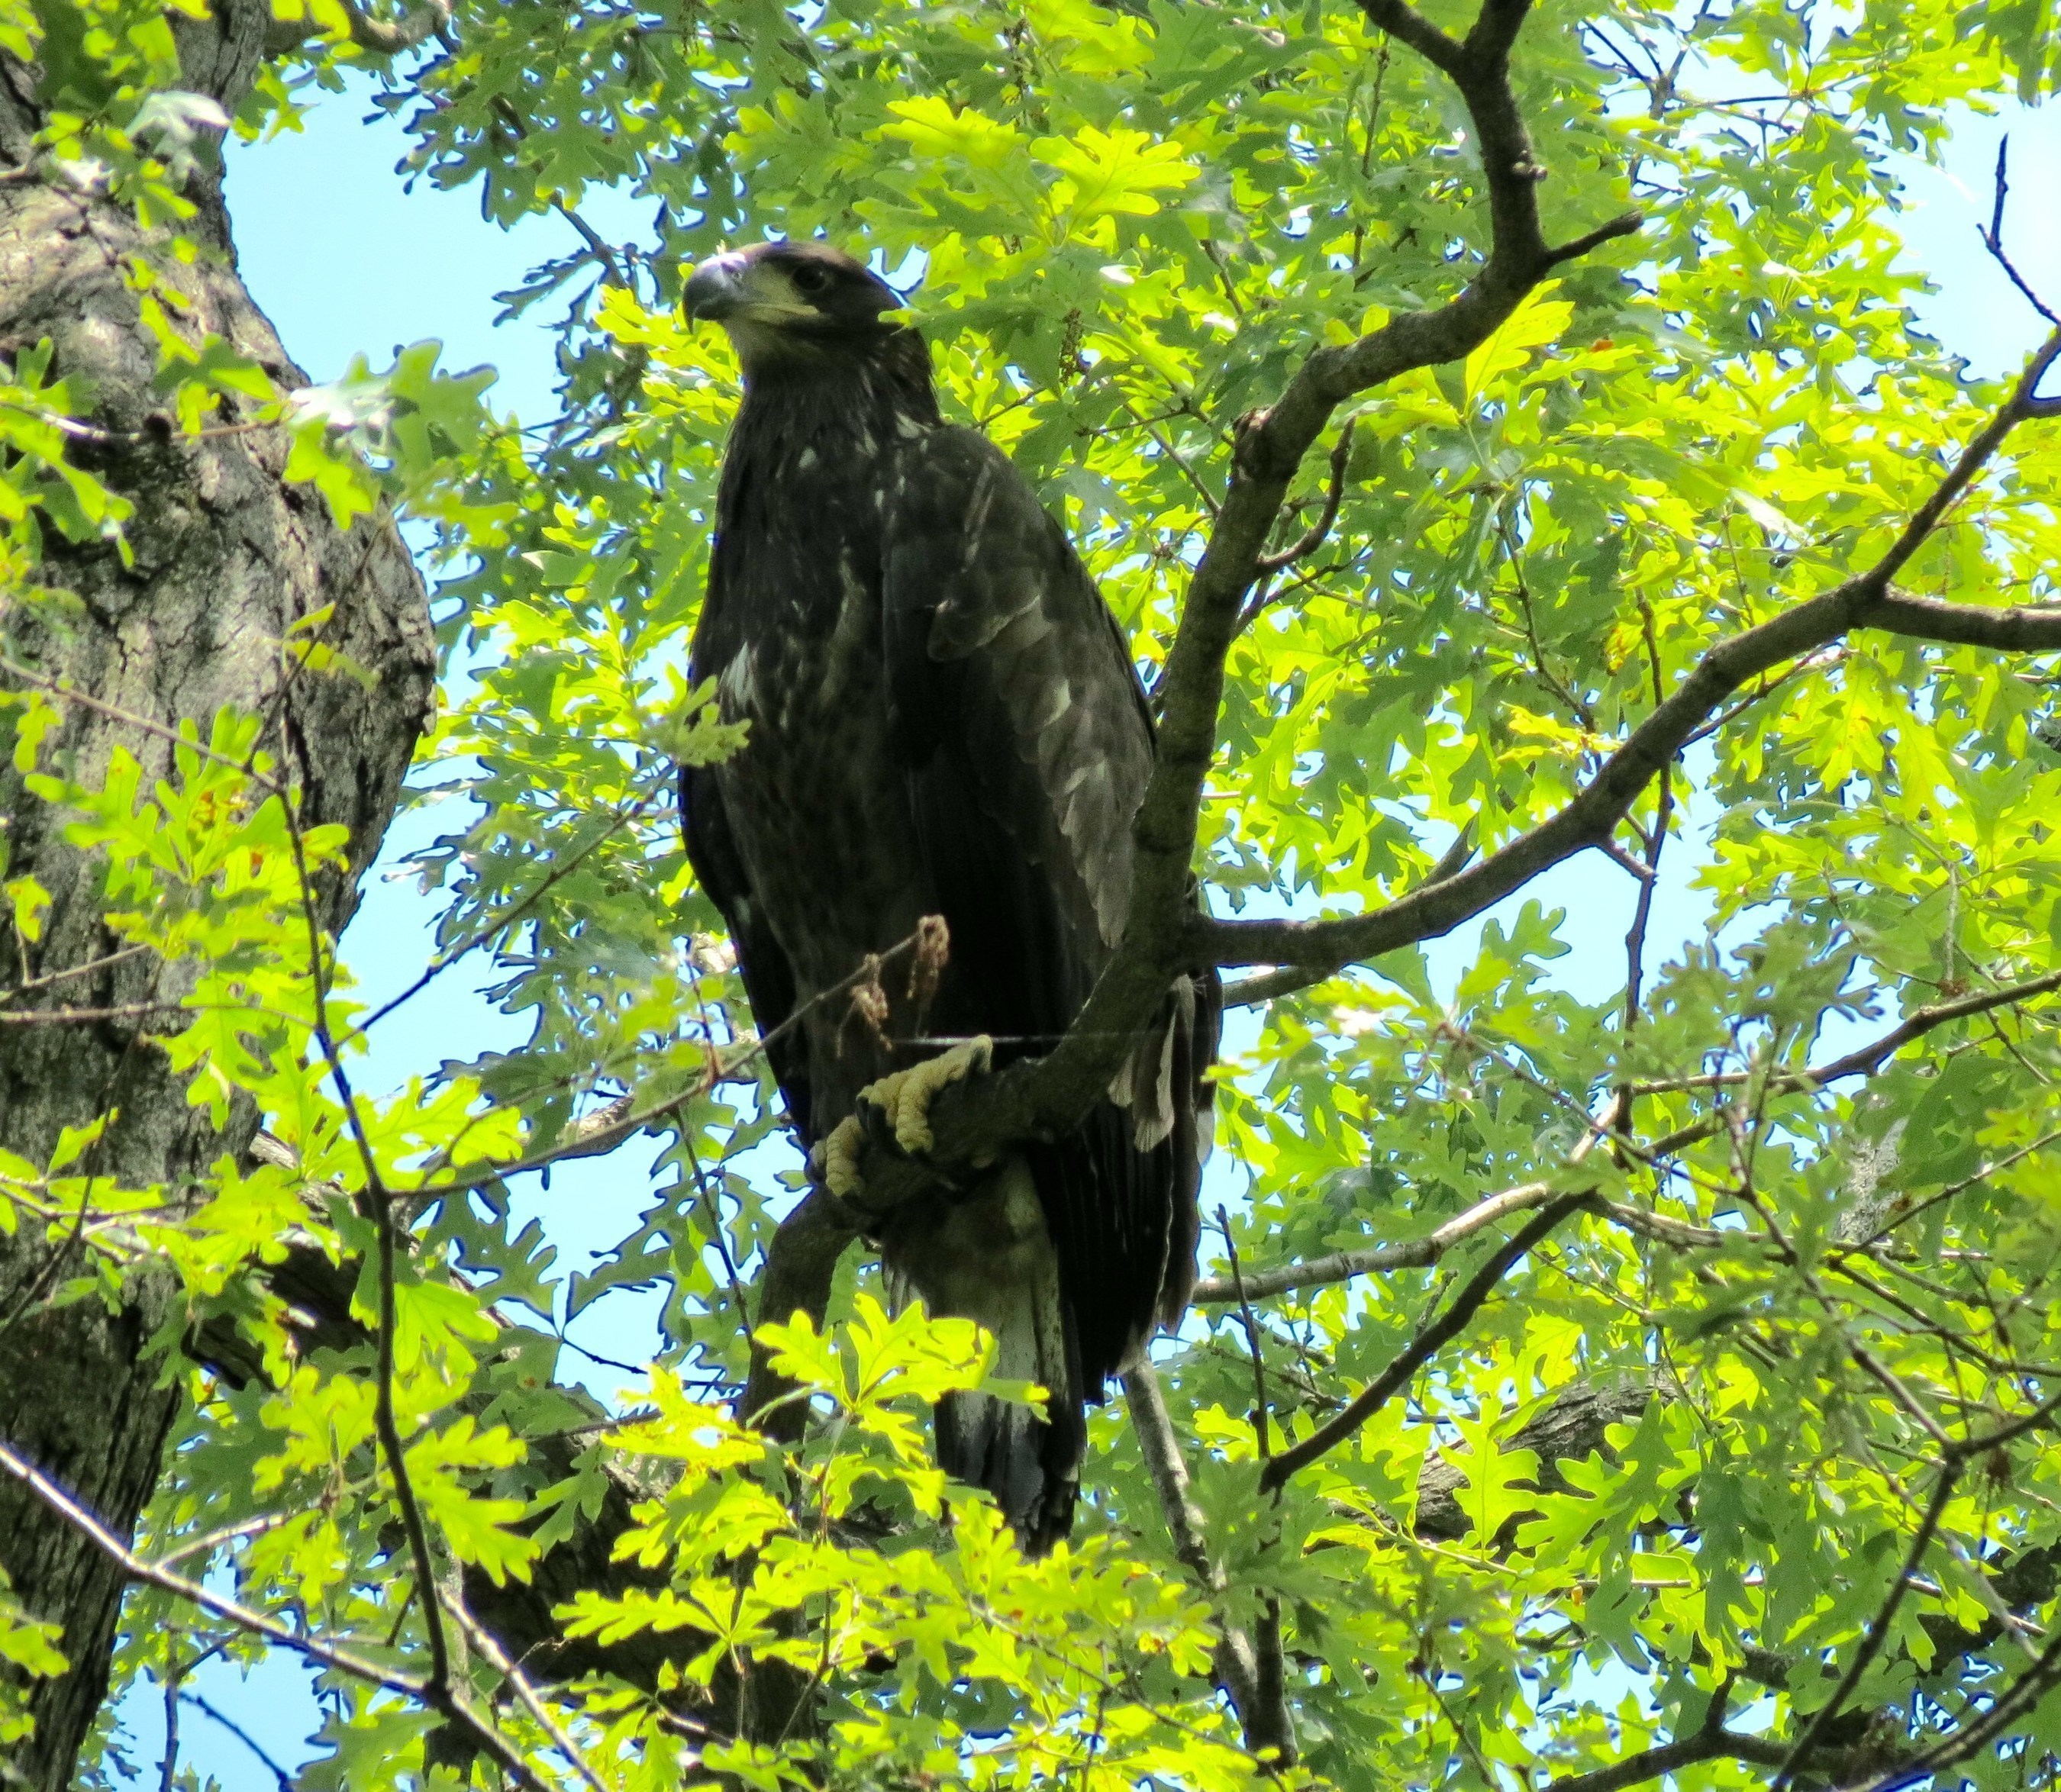 """FREEDOM TAKES FIRST FLIGHT - Sunday afternoon, June 5th, at around 2:30pm EST, """"Freedom,"""" one of the two young eagles residing in the nest of """"Mr. President"""" and """"The First Lady"""" at the U.S. National Arboretum, fledged the nest! Visit dceaglecam.org to watch eagle """"Liberty"""" fledge the nest as well. Photo: Copyright 2016 Sue Greeley for American Eagle Foundation"""